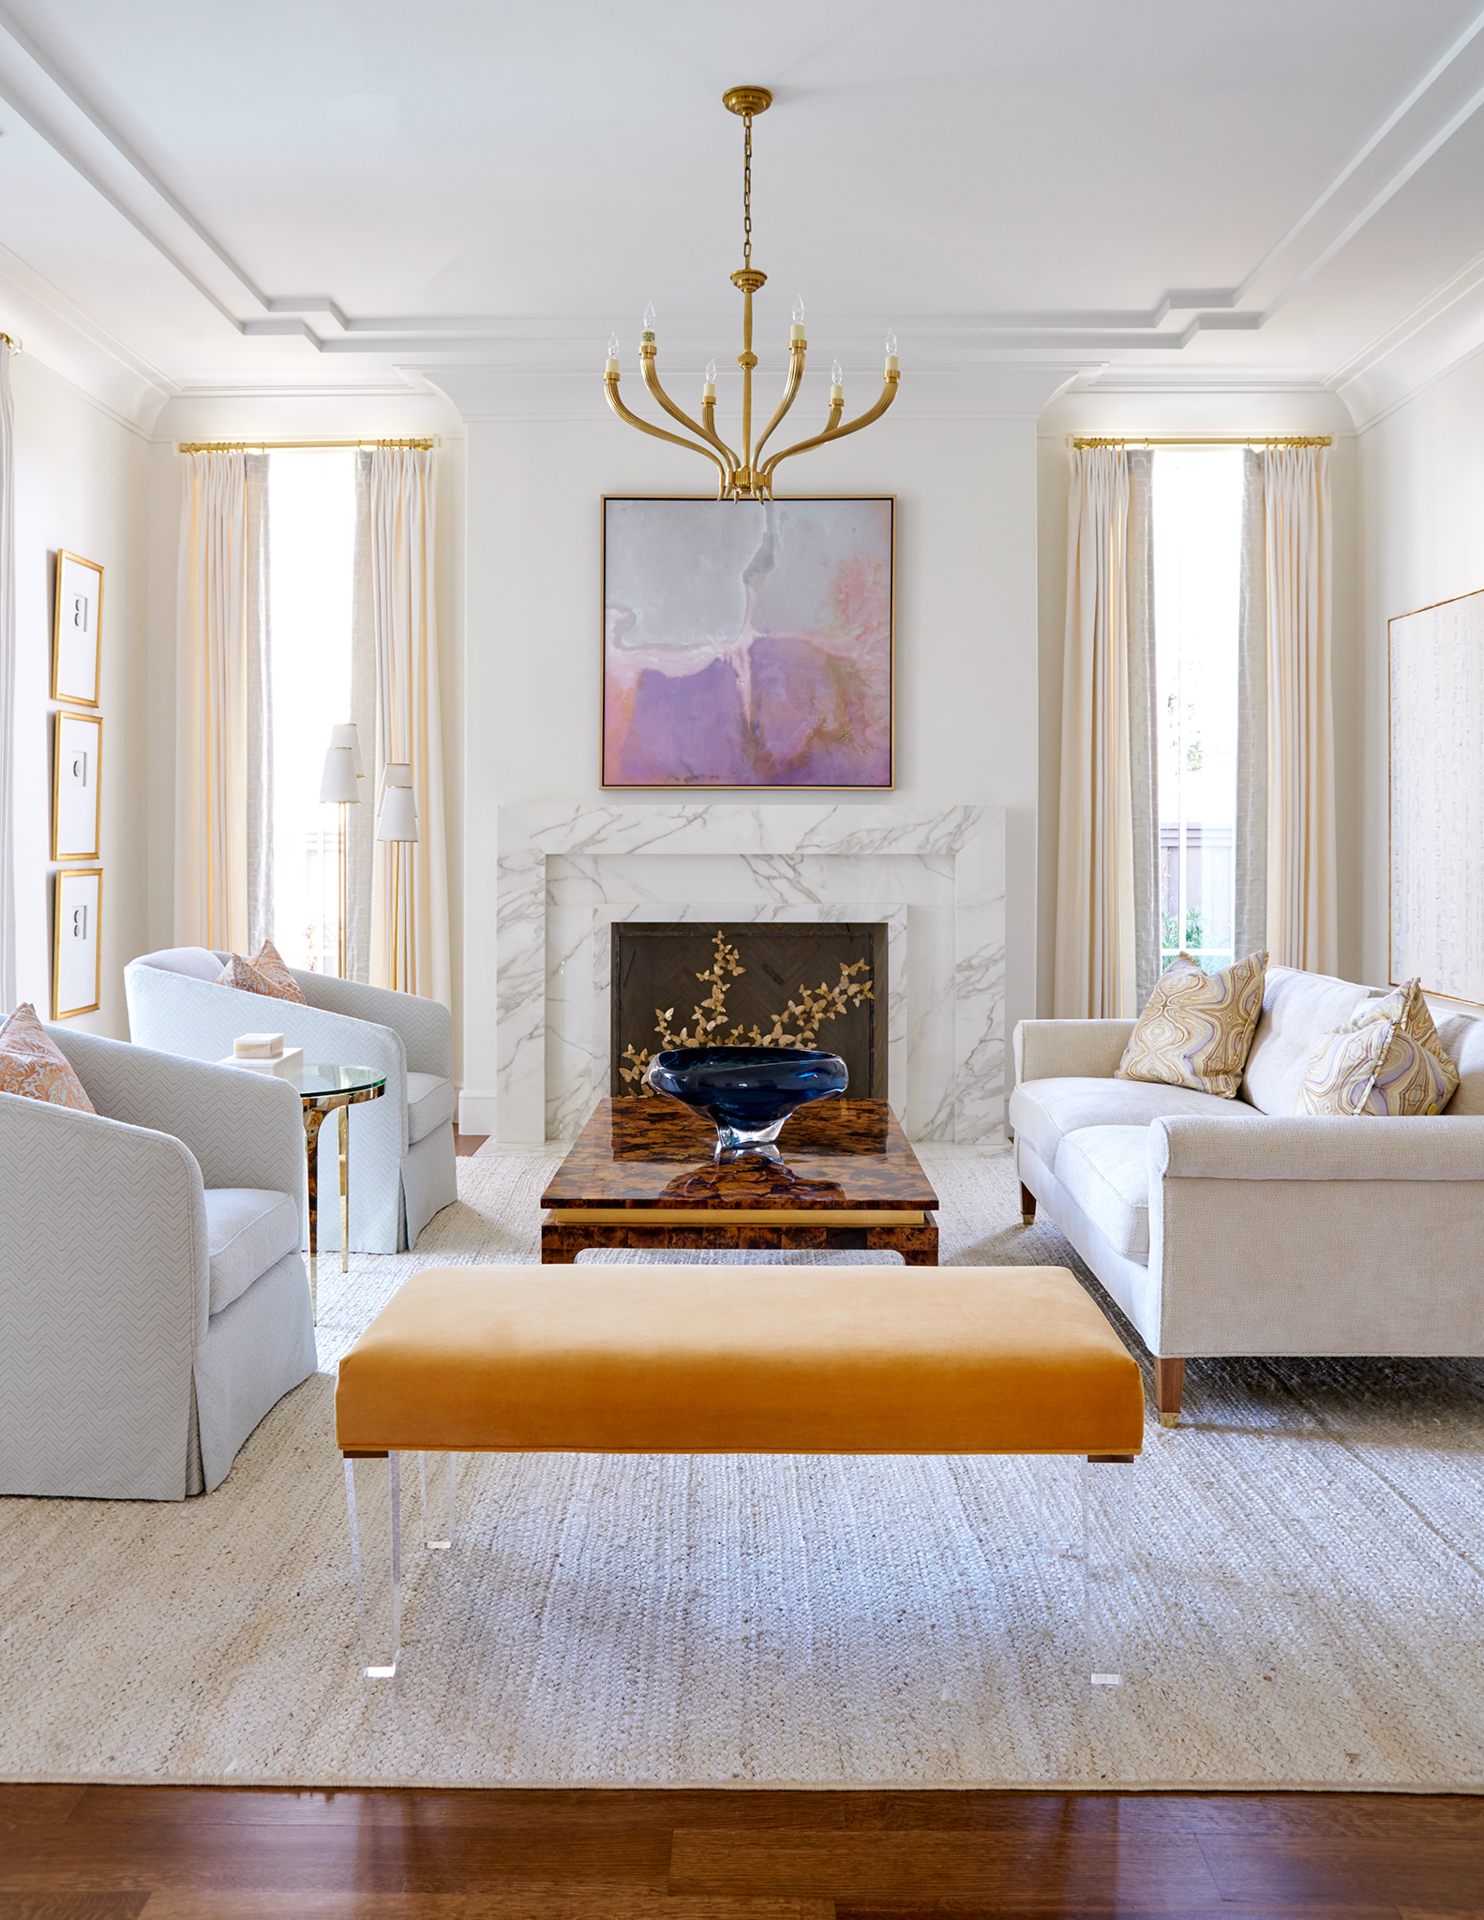 Claire-Crowe-Butterfly-Fire-Screen-Pure-Gold-Jenkins-Interiors.png